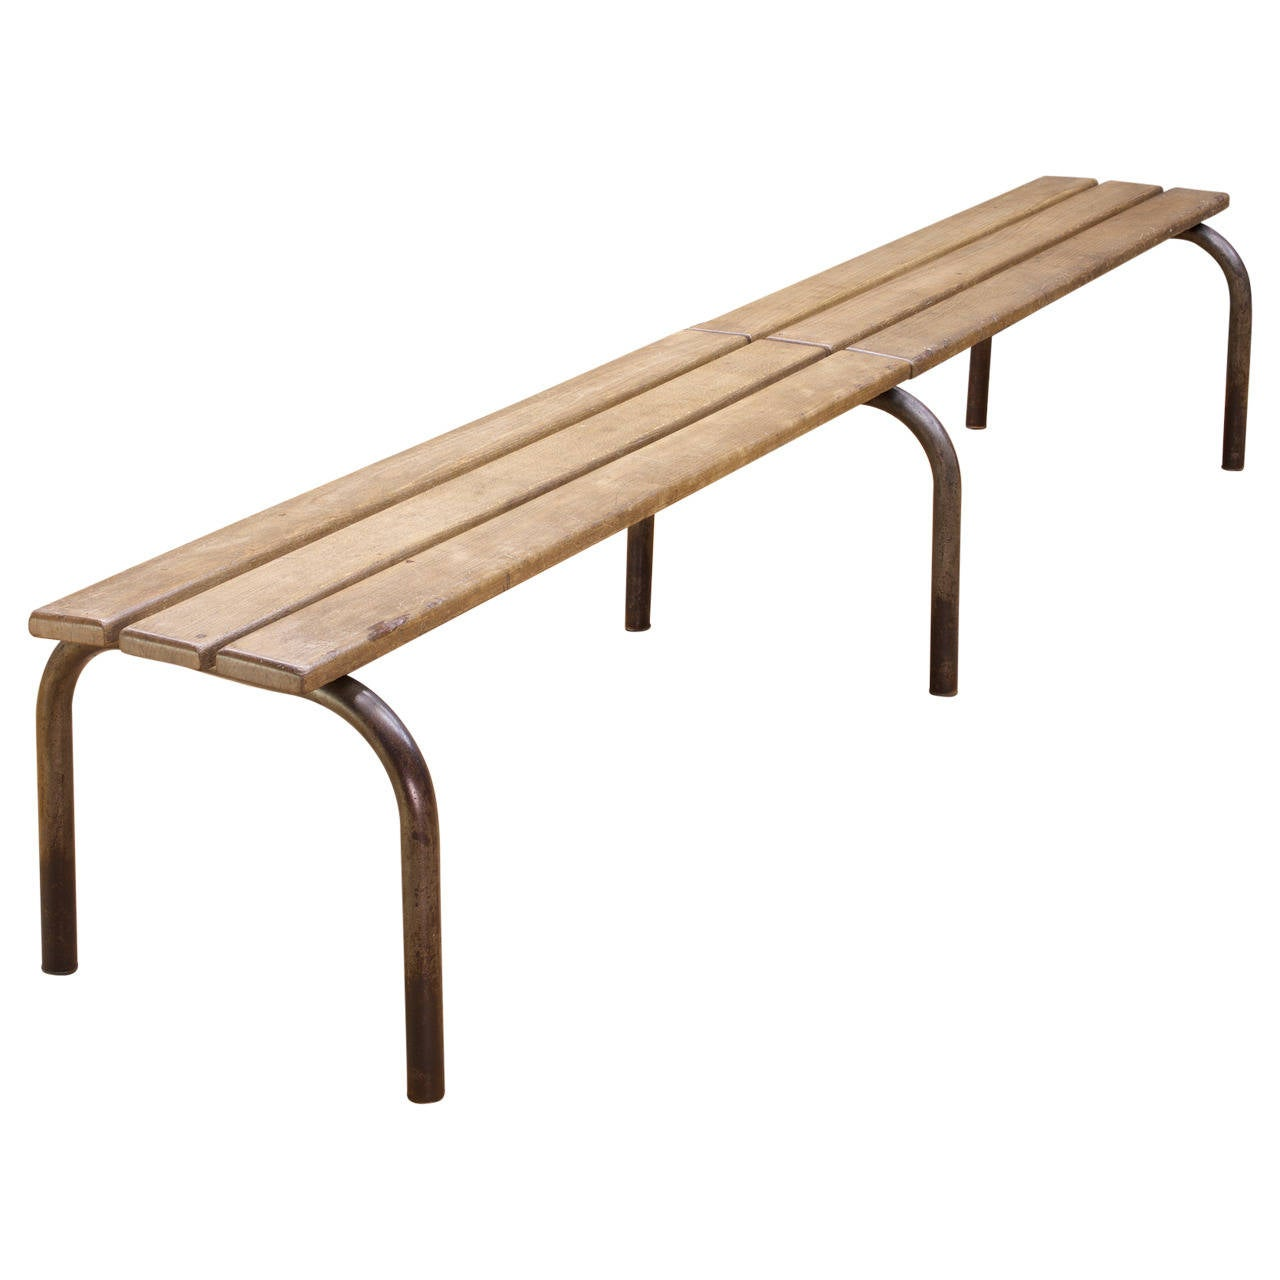 French Industrial Wood Steel Poolside Long Bench Prouve Perriand Malaval For Sale At 1stdibs